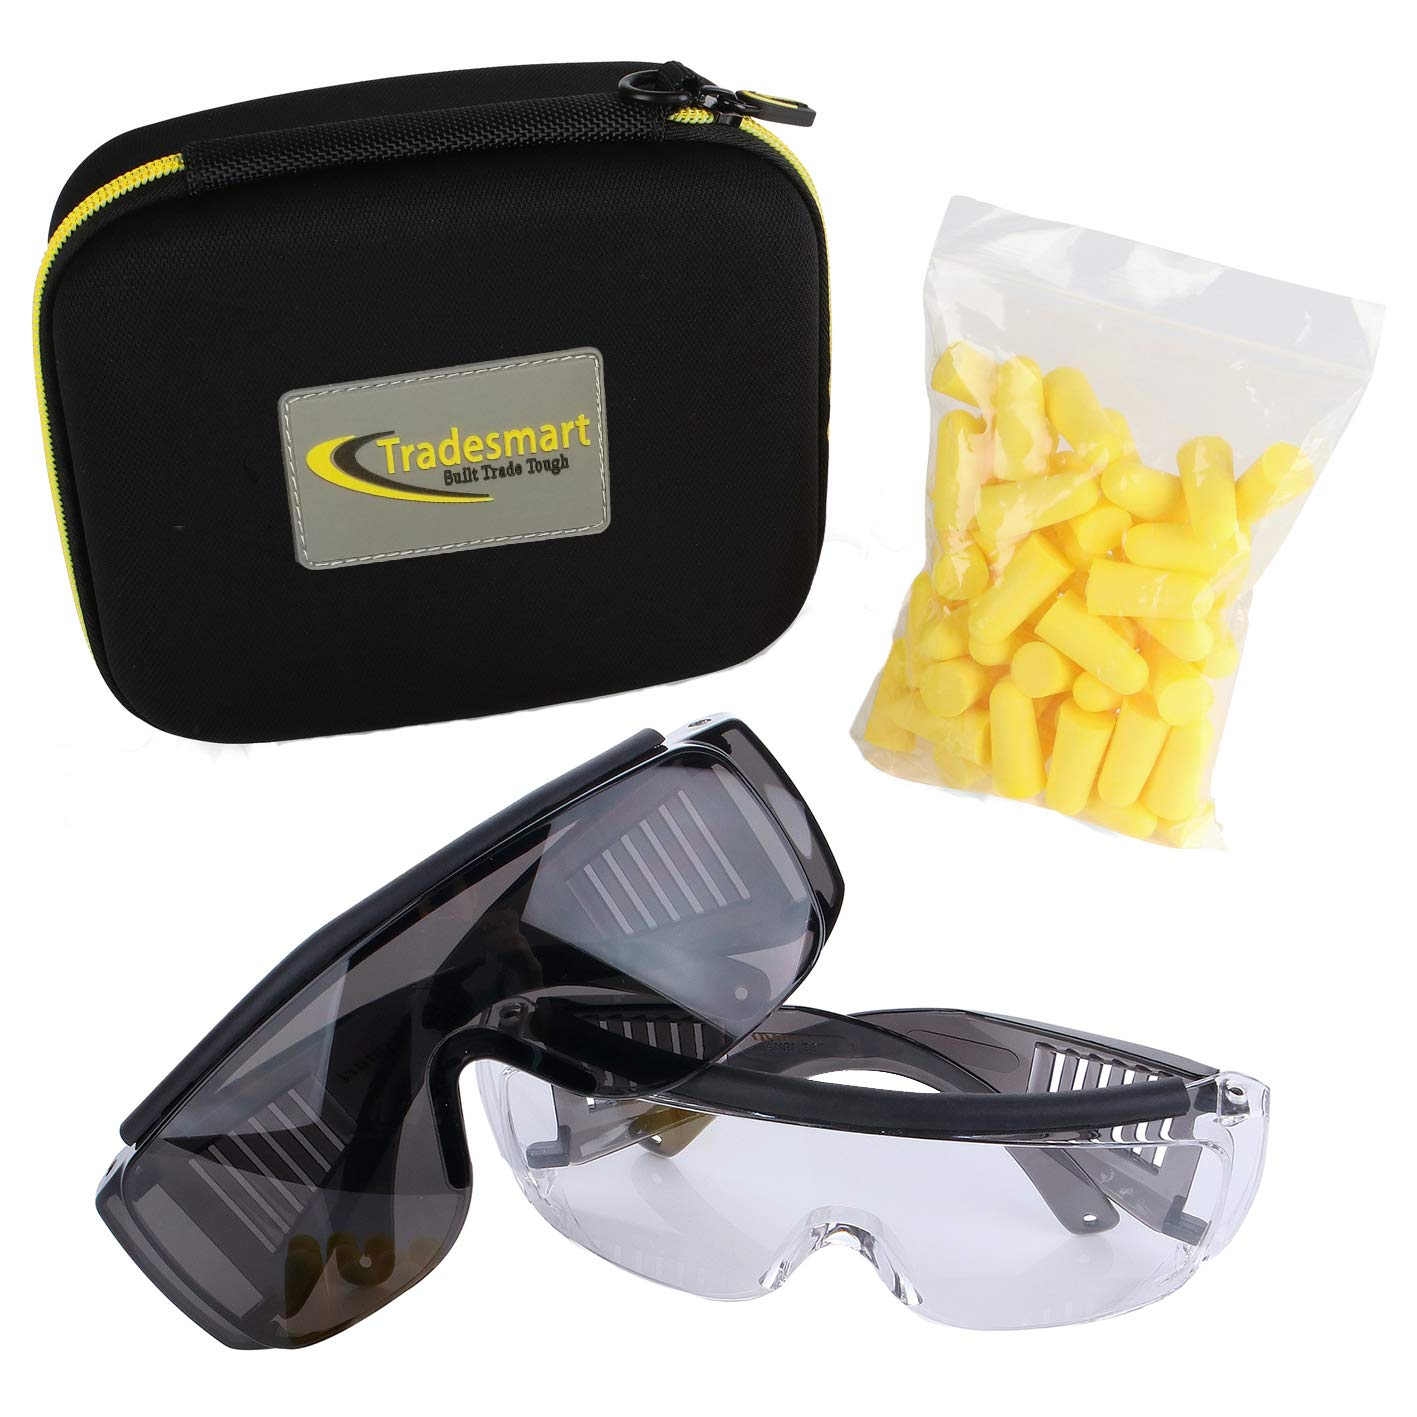 TRADESMART Over-Prescription Safety Glasses & Case - Shooting Ear Plug & Eye Protection for The Gun Range with Hard Case, - UV400 Anti-Fog and Anti-Scratch Indoor & Outdoor Glasses - NRR 33 (Yellow) by TRADESMART BUILT TRADE TOUGH